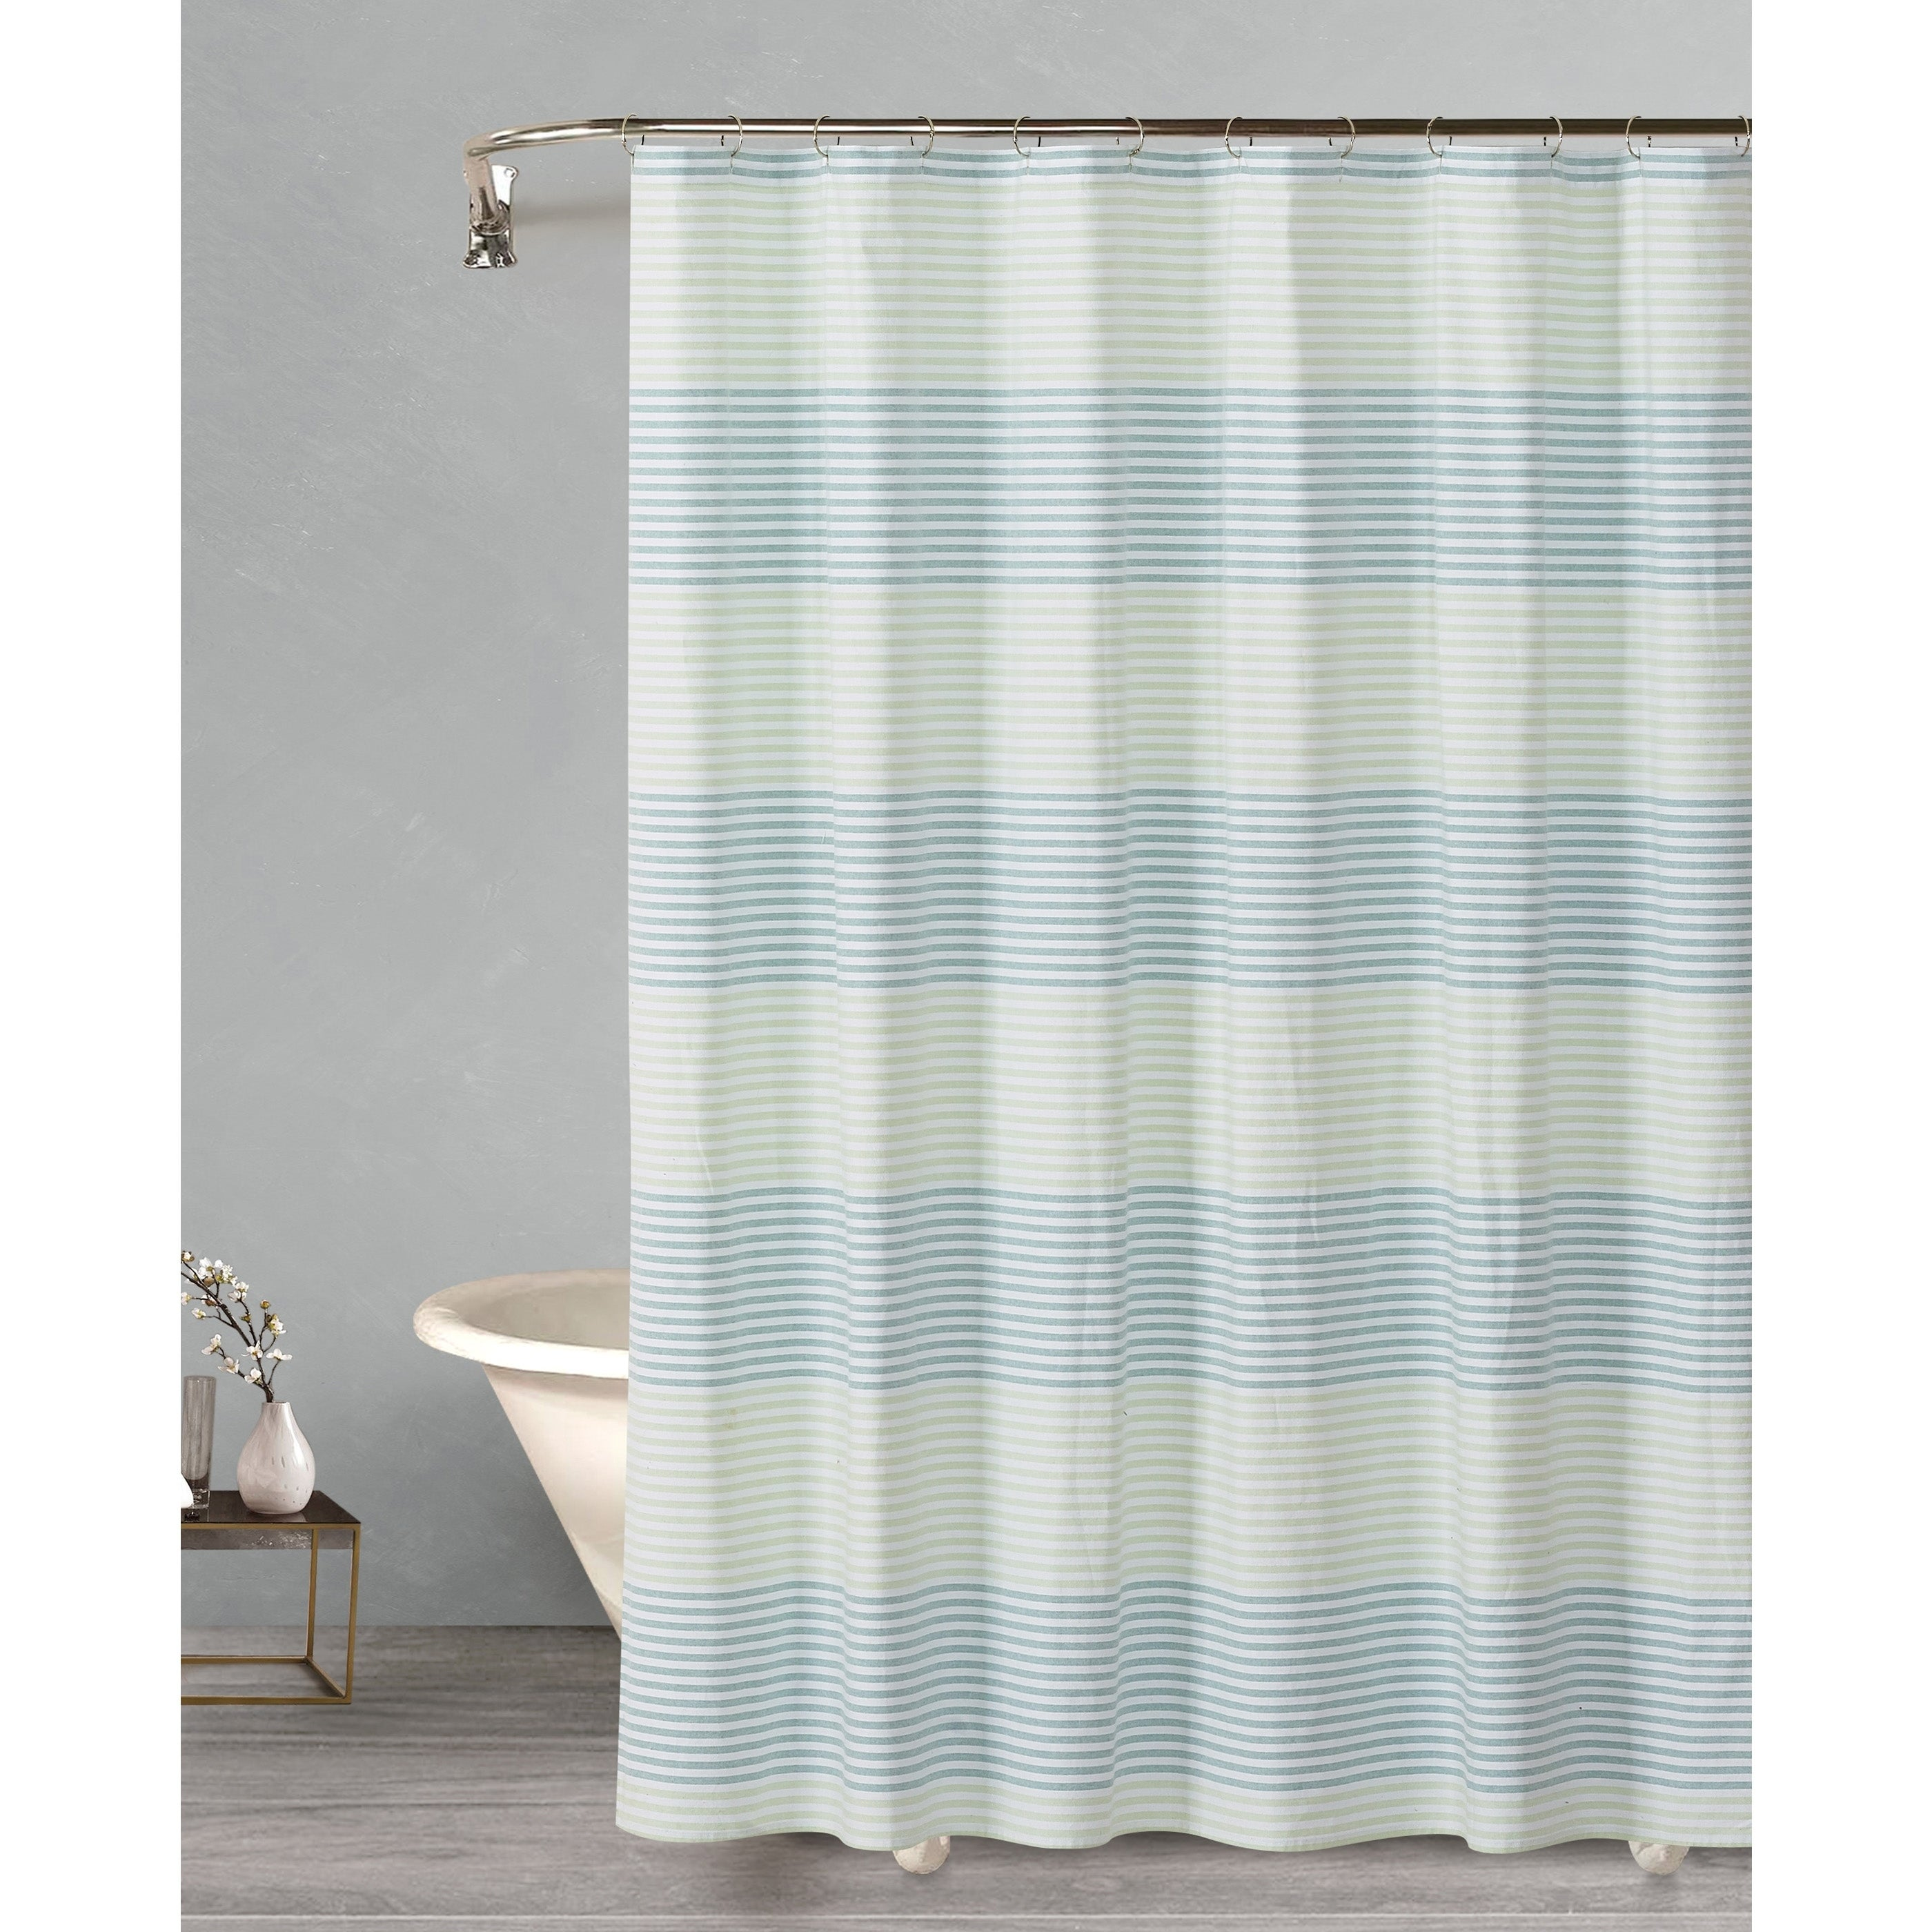 Style Quarters Cabana Stripe Green Cotton Shower Curtain For Bathroom Showers Eco Friendly Machine Washable 72Wx72L